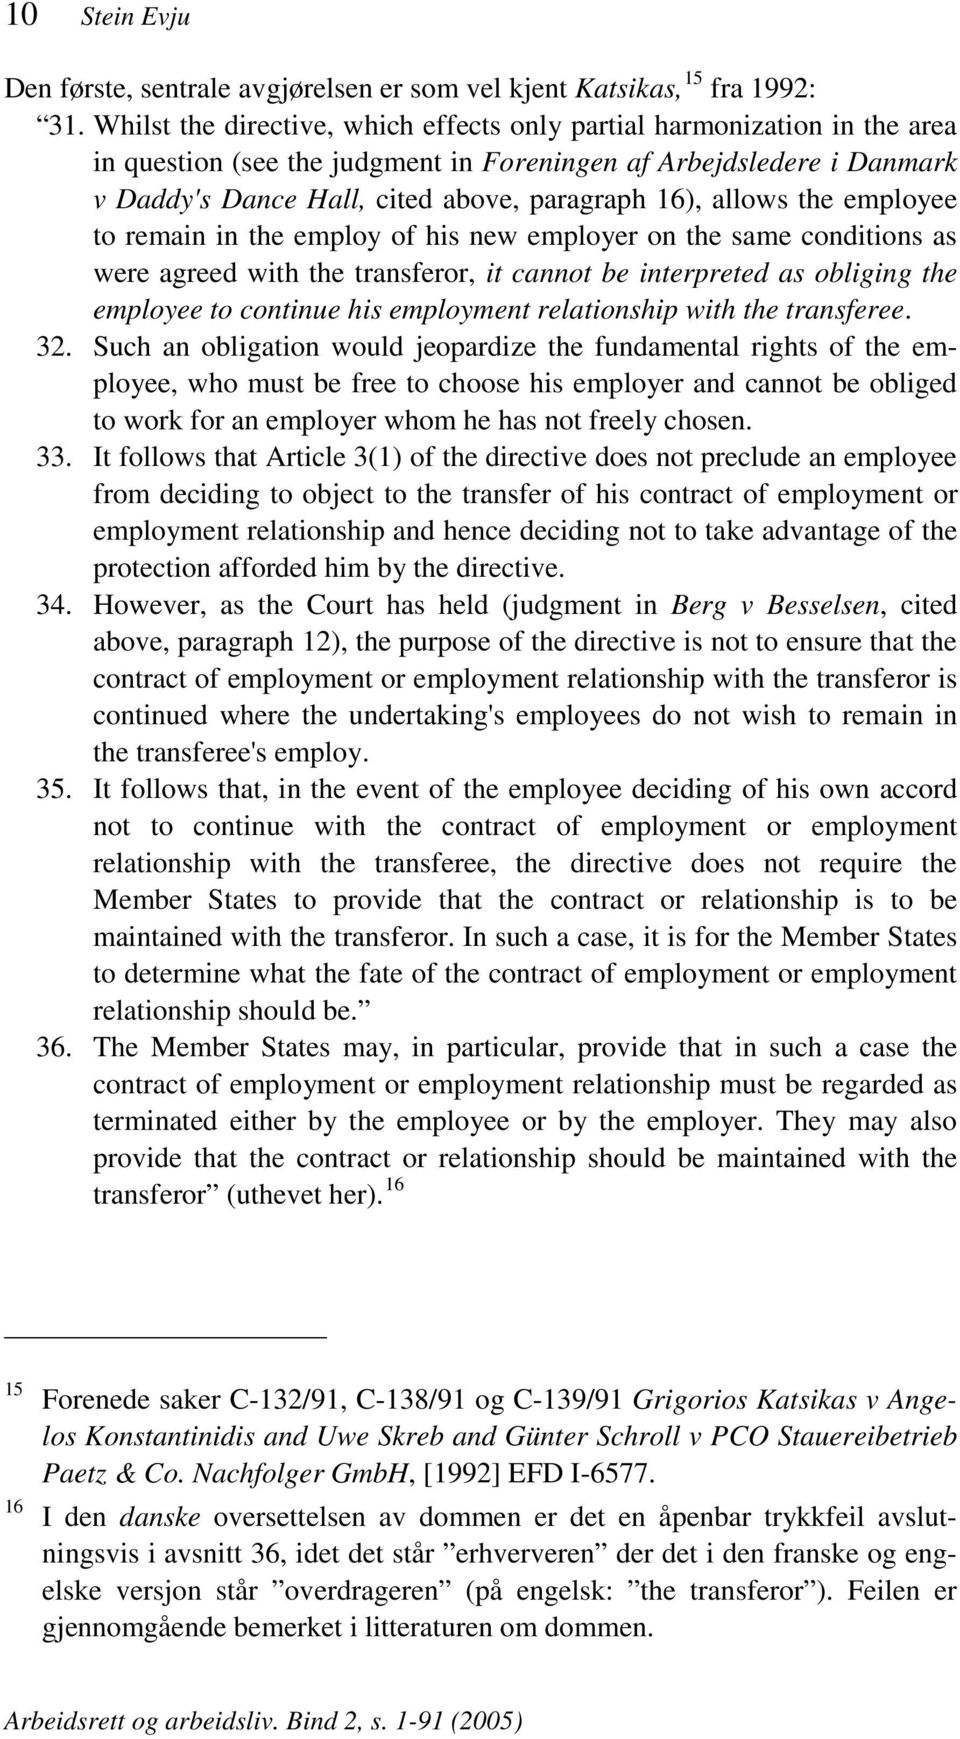 allows the employee to remain in the employ of his new employer on the same conditions as were agreed with the transferor, it cannot be interpreted as obliging the employee to continue his employment